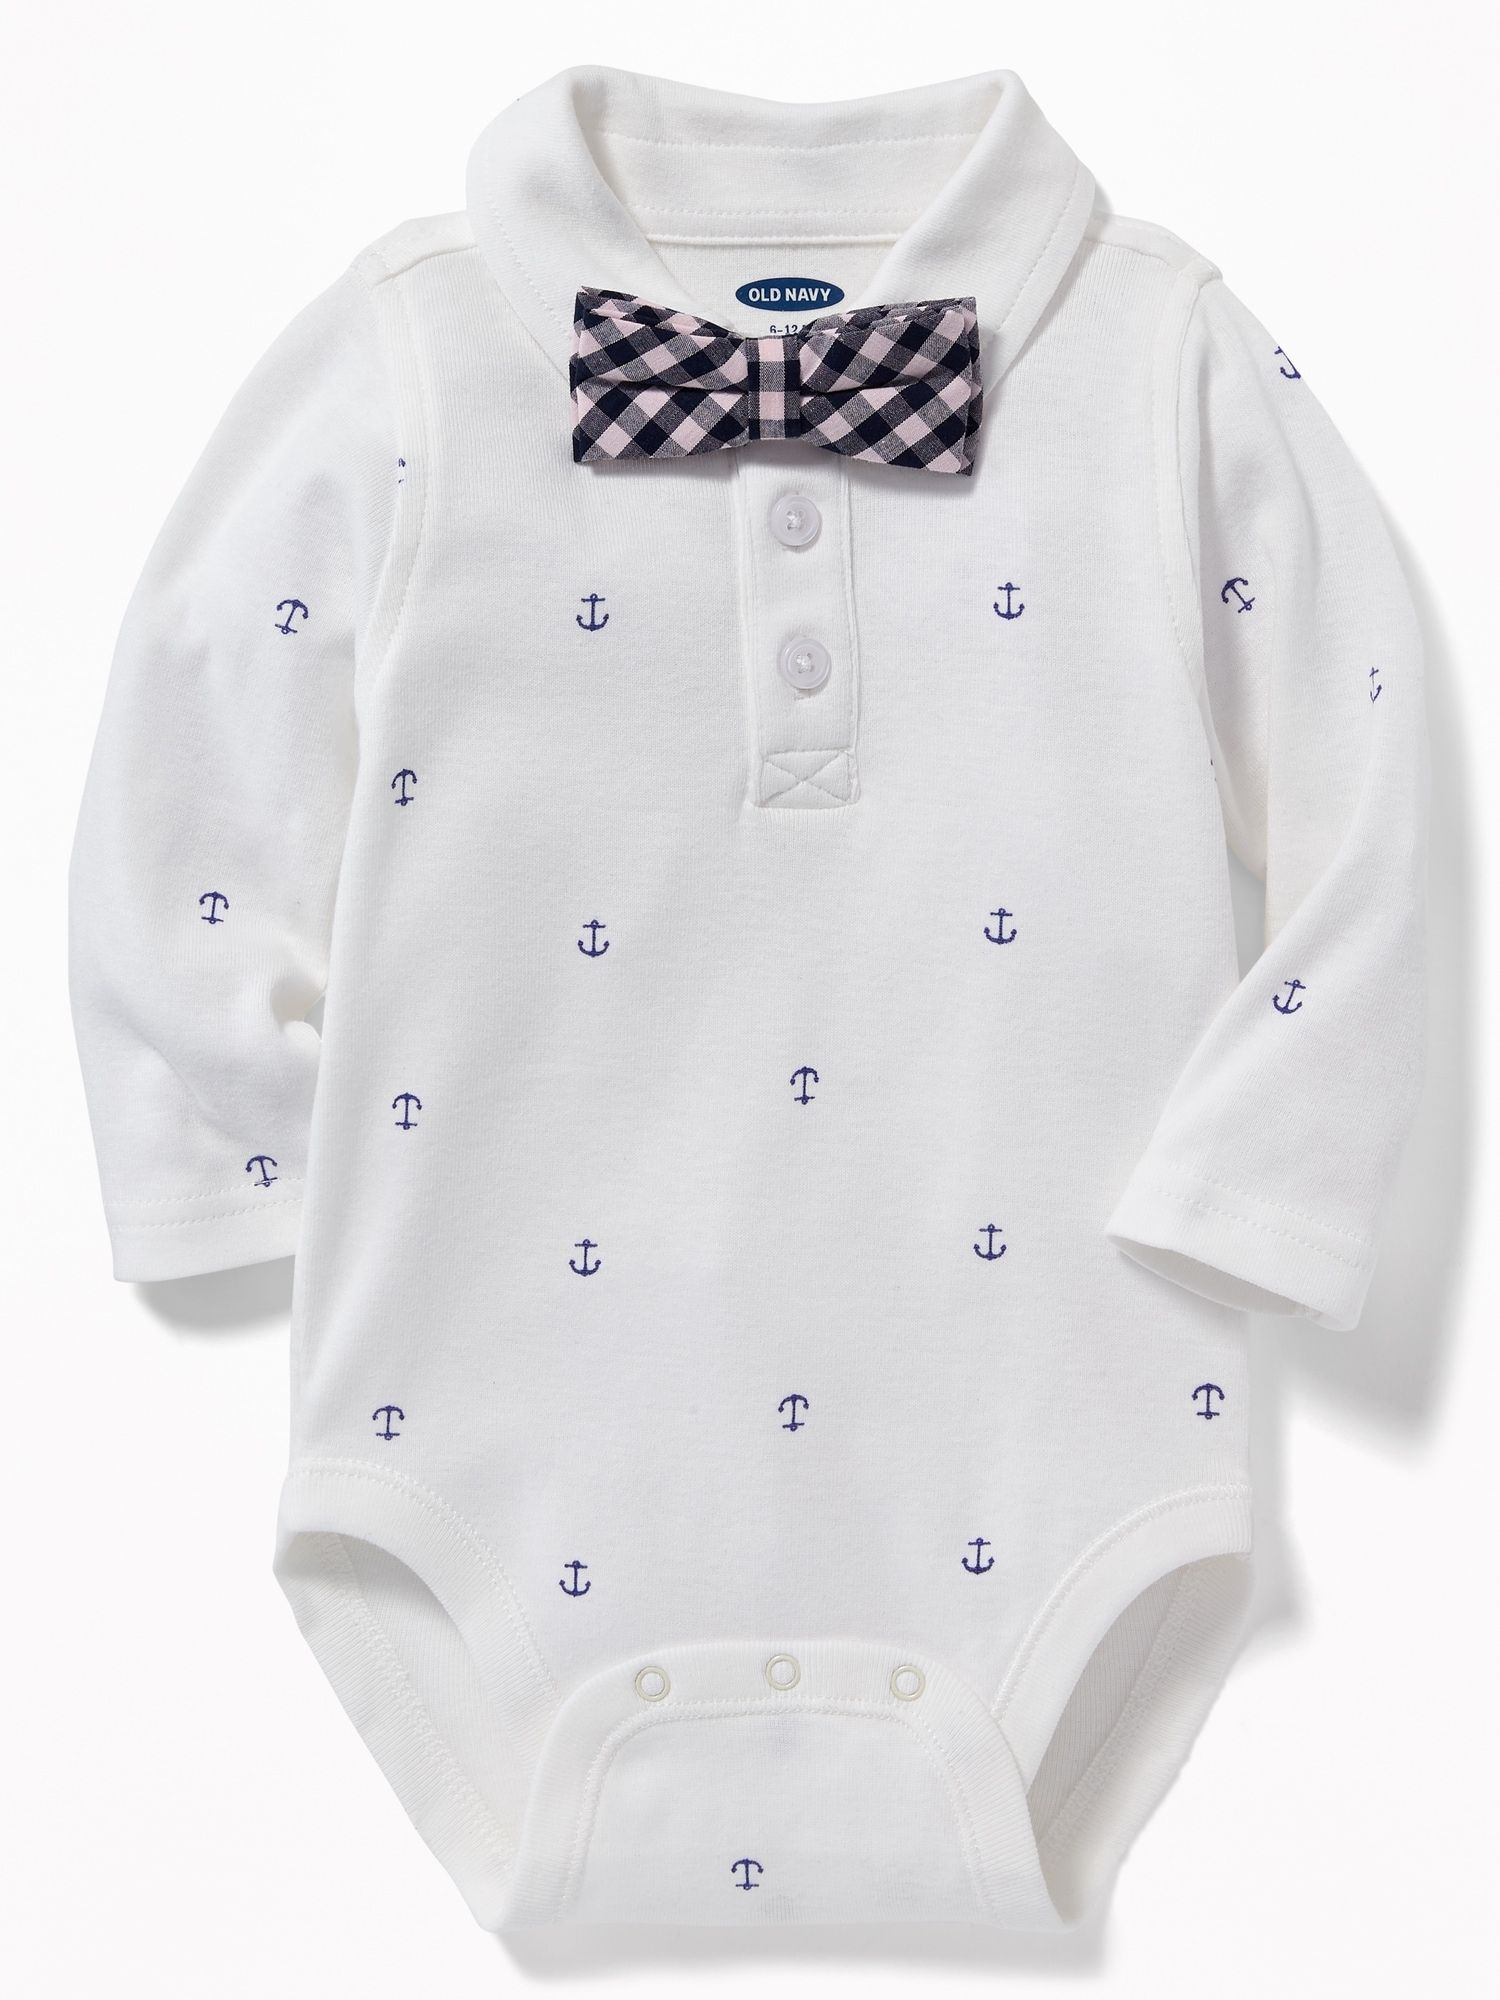 01e65056881d Anchor-Print Polo Bodysuit & Bow-Tie Set for Baby | Baby clothes ...